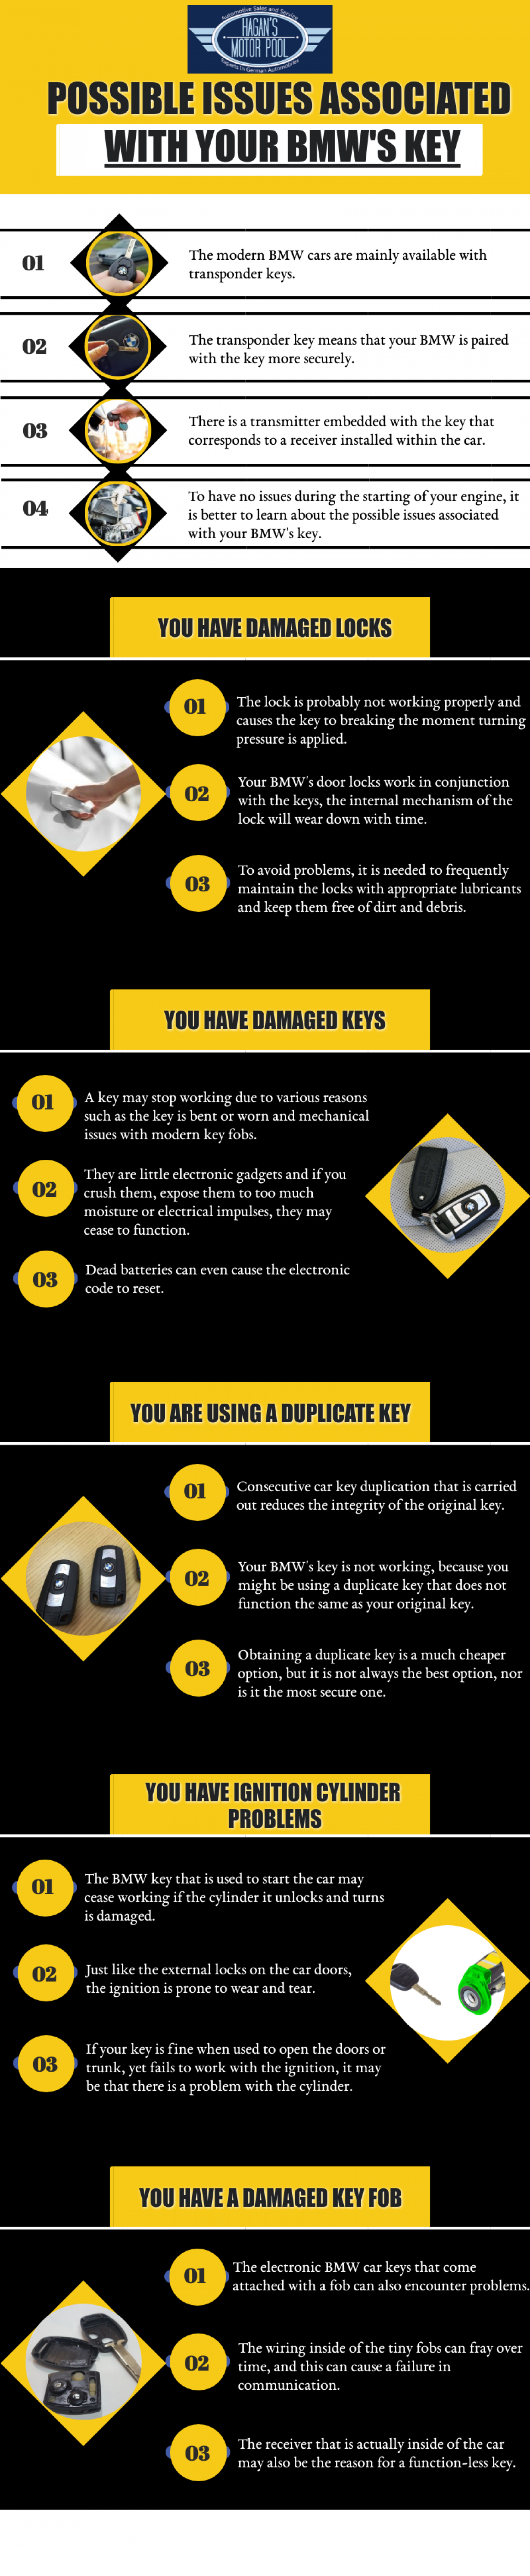 Possible Issues Associated with Your BMW's Key Infographic